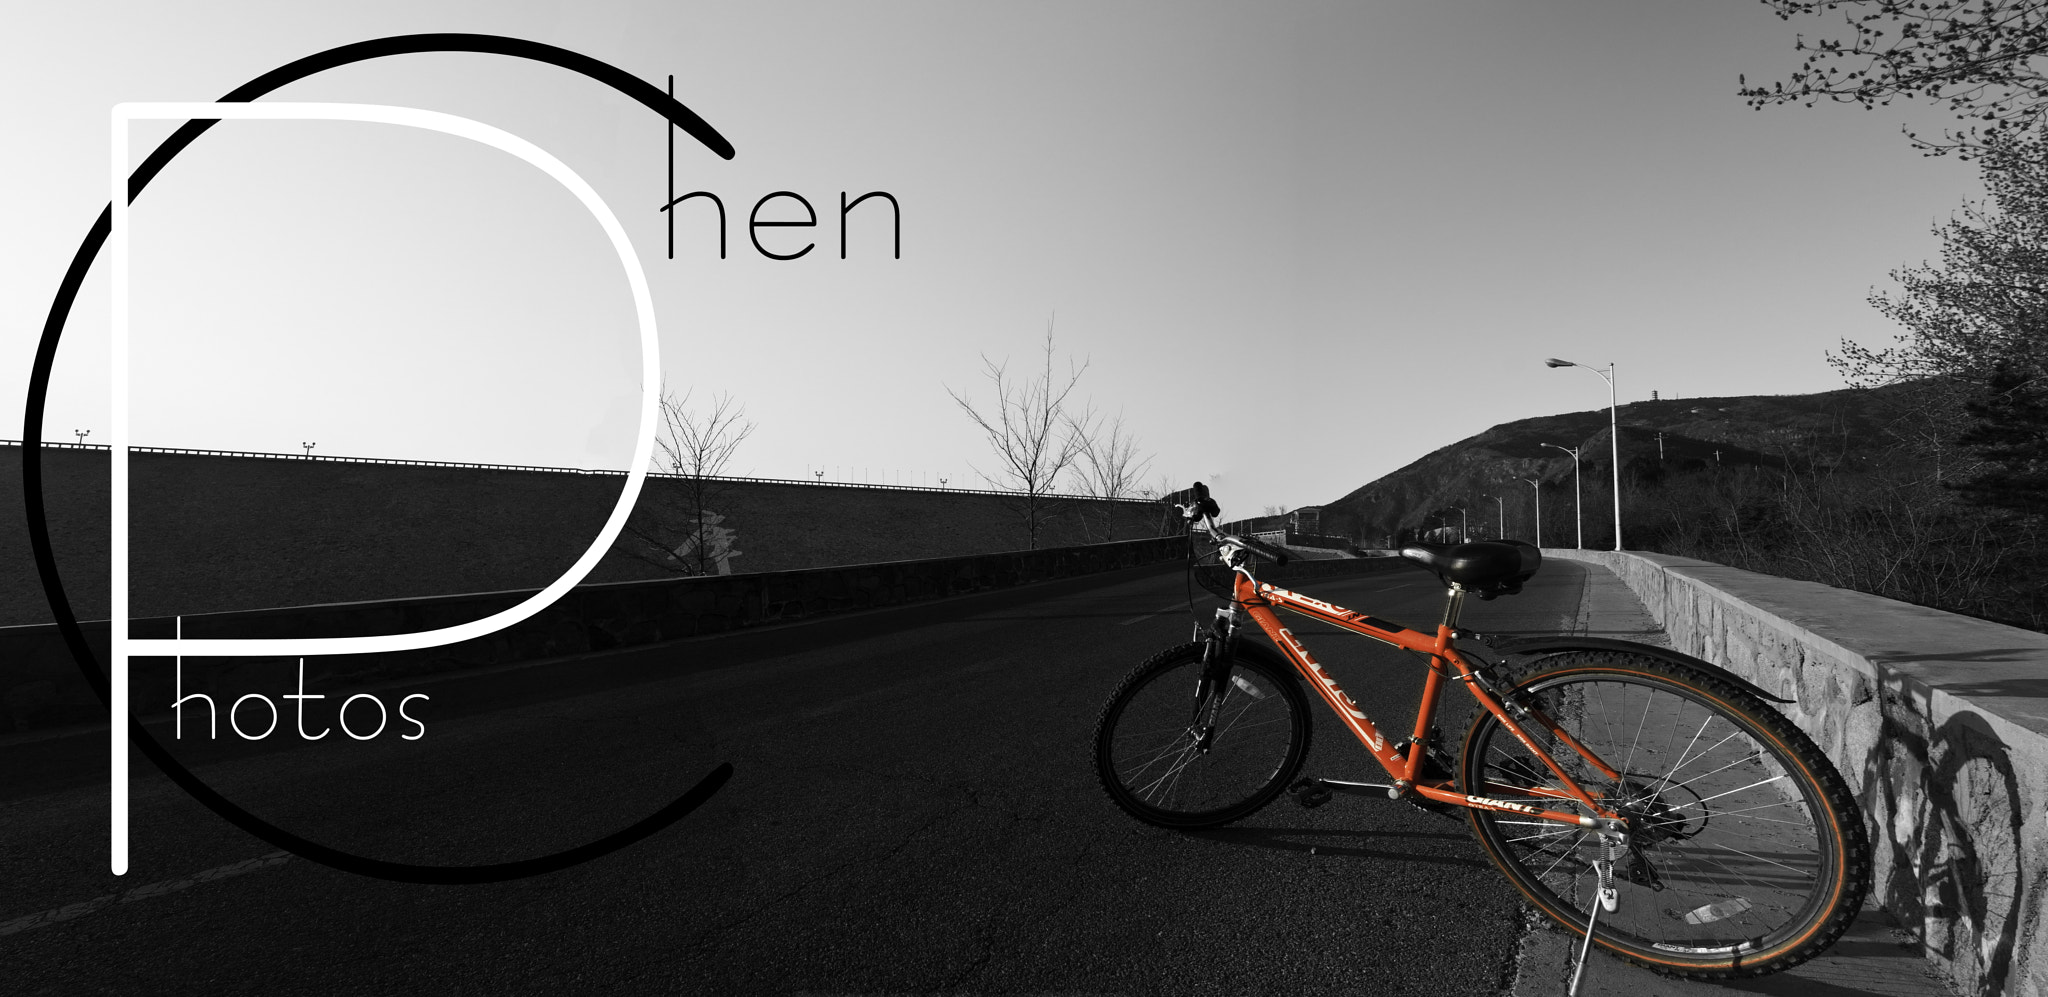 Photograph Bike the world up by Evan Chen on 500px